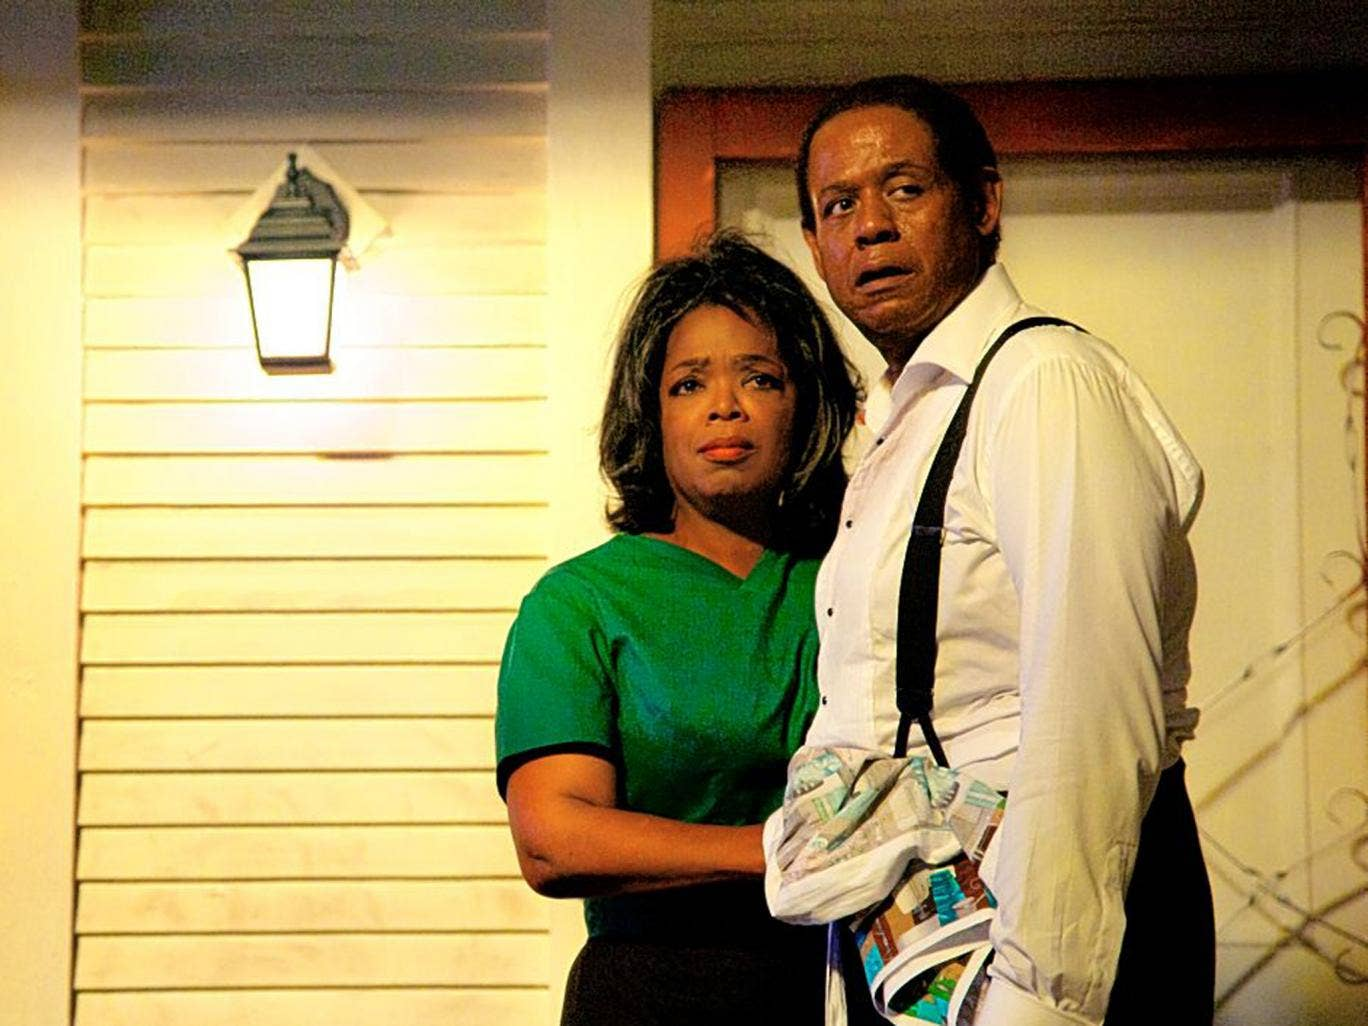 Brace yourself: Oprah Winfrey and Forest Whitaker in 'Lee Daniels' 'The Butler'